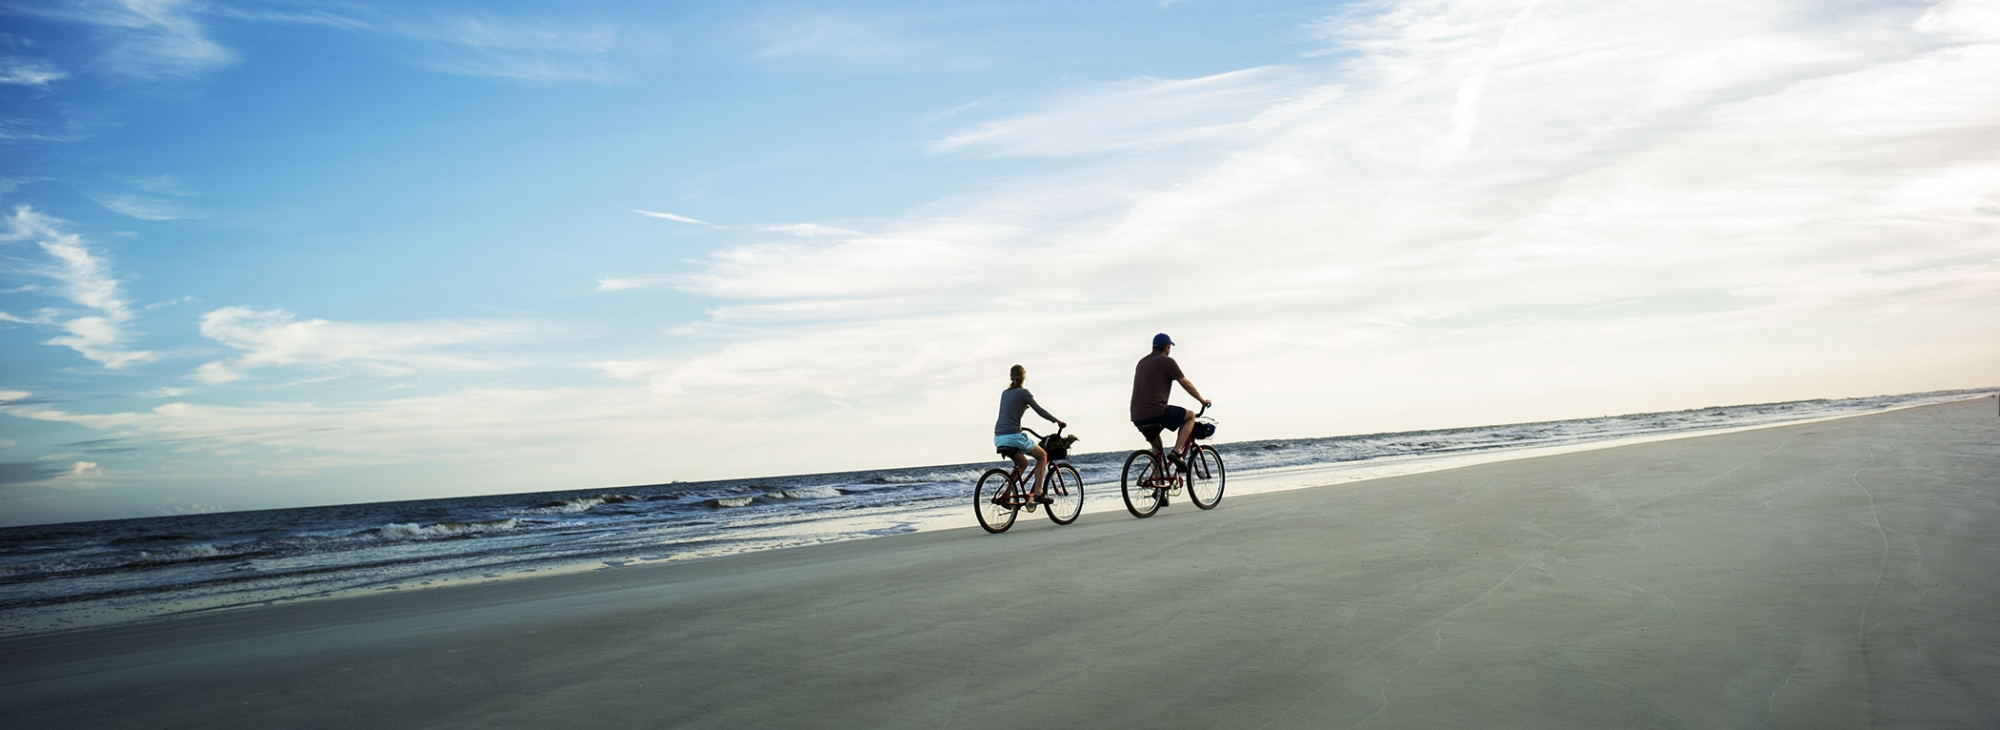 frequently-asked-questions-about-biking-on-hilton-head-island1-2000x730